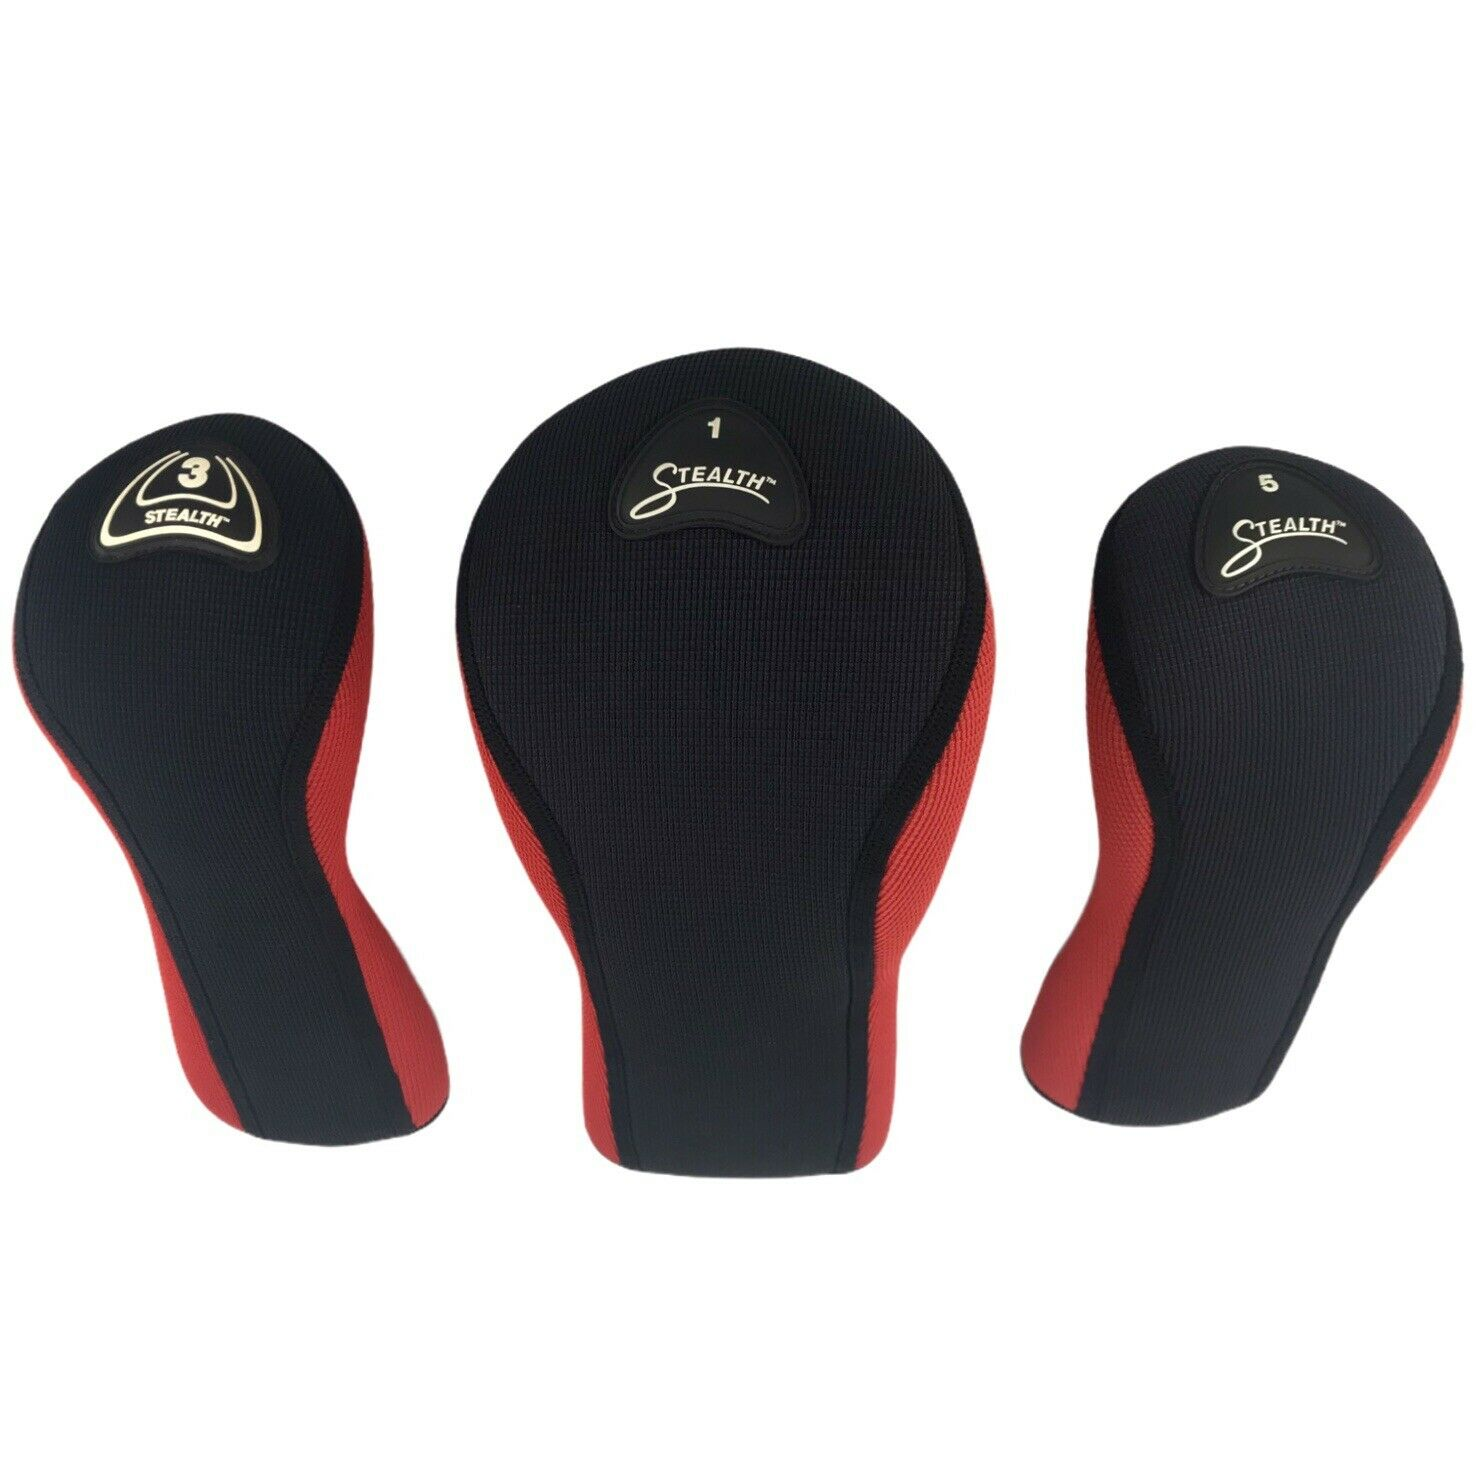 Stealth Set Lot of 3 Head Covers Stretch Material Red & Black